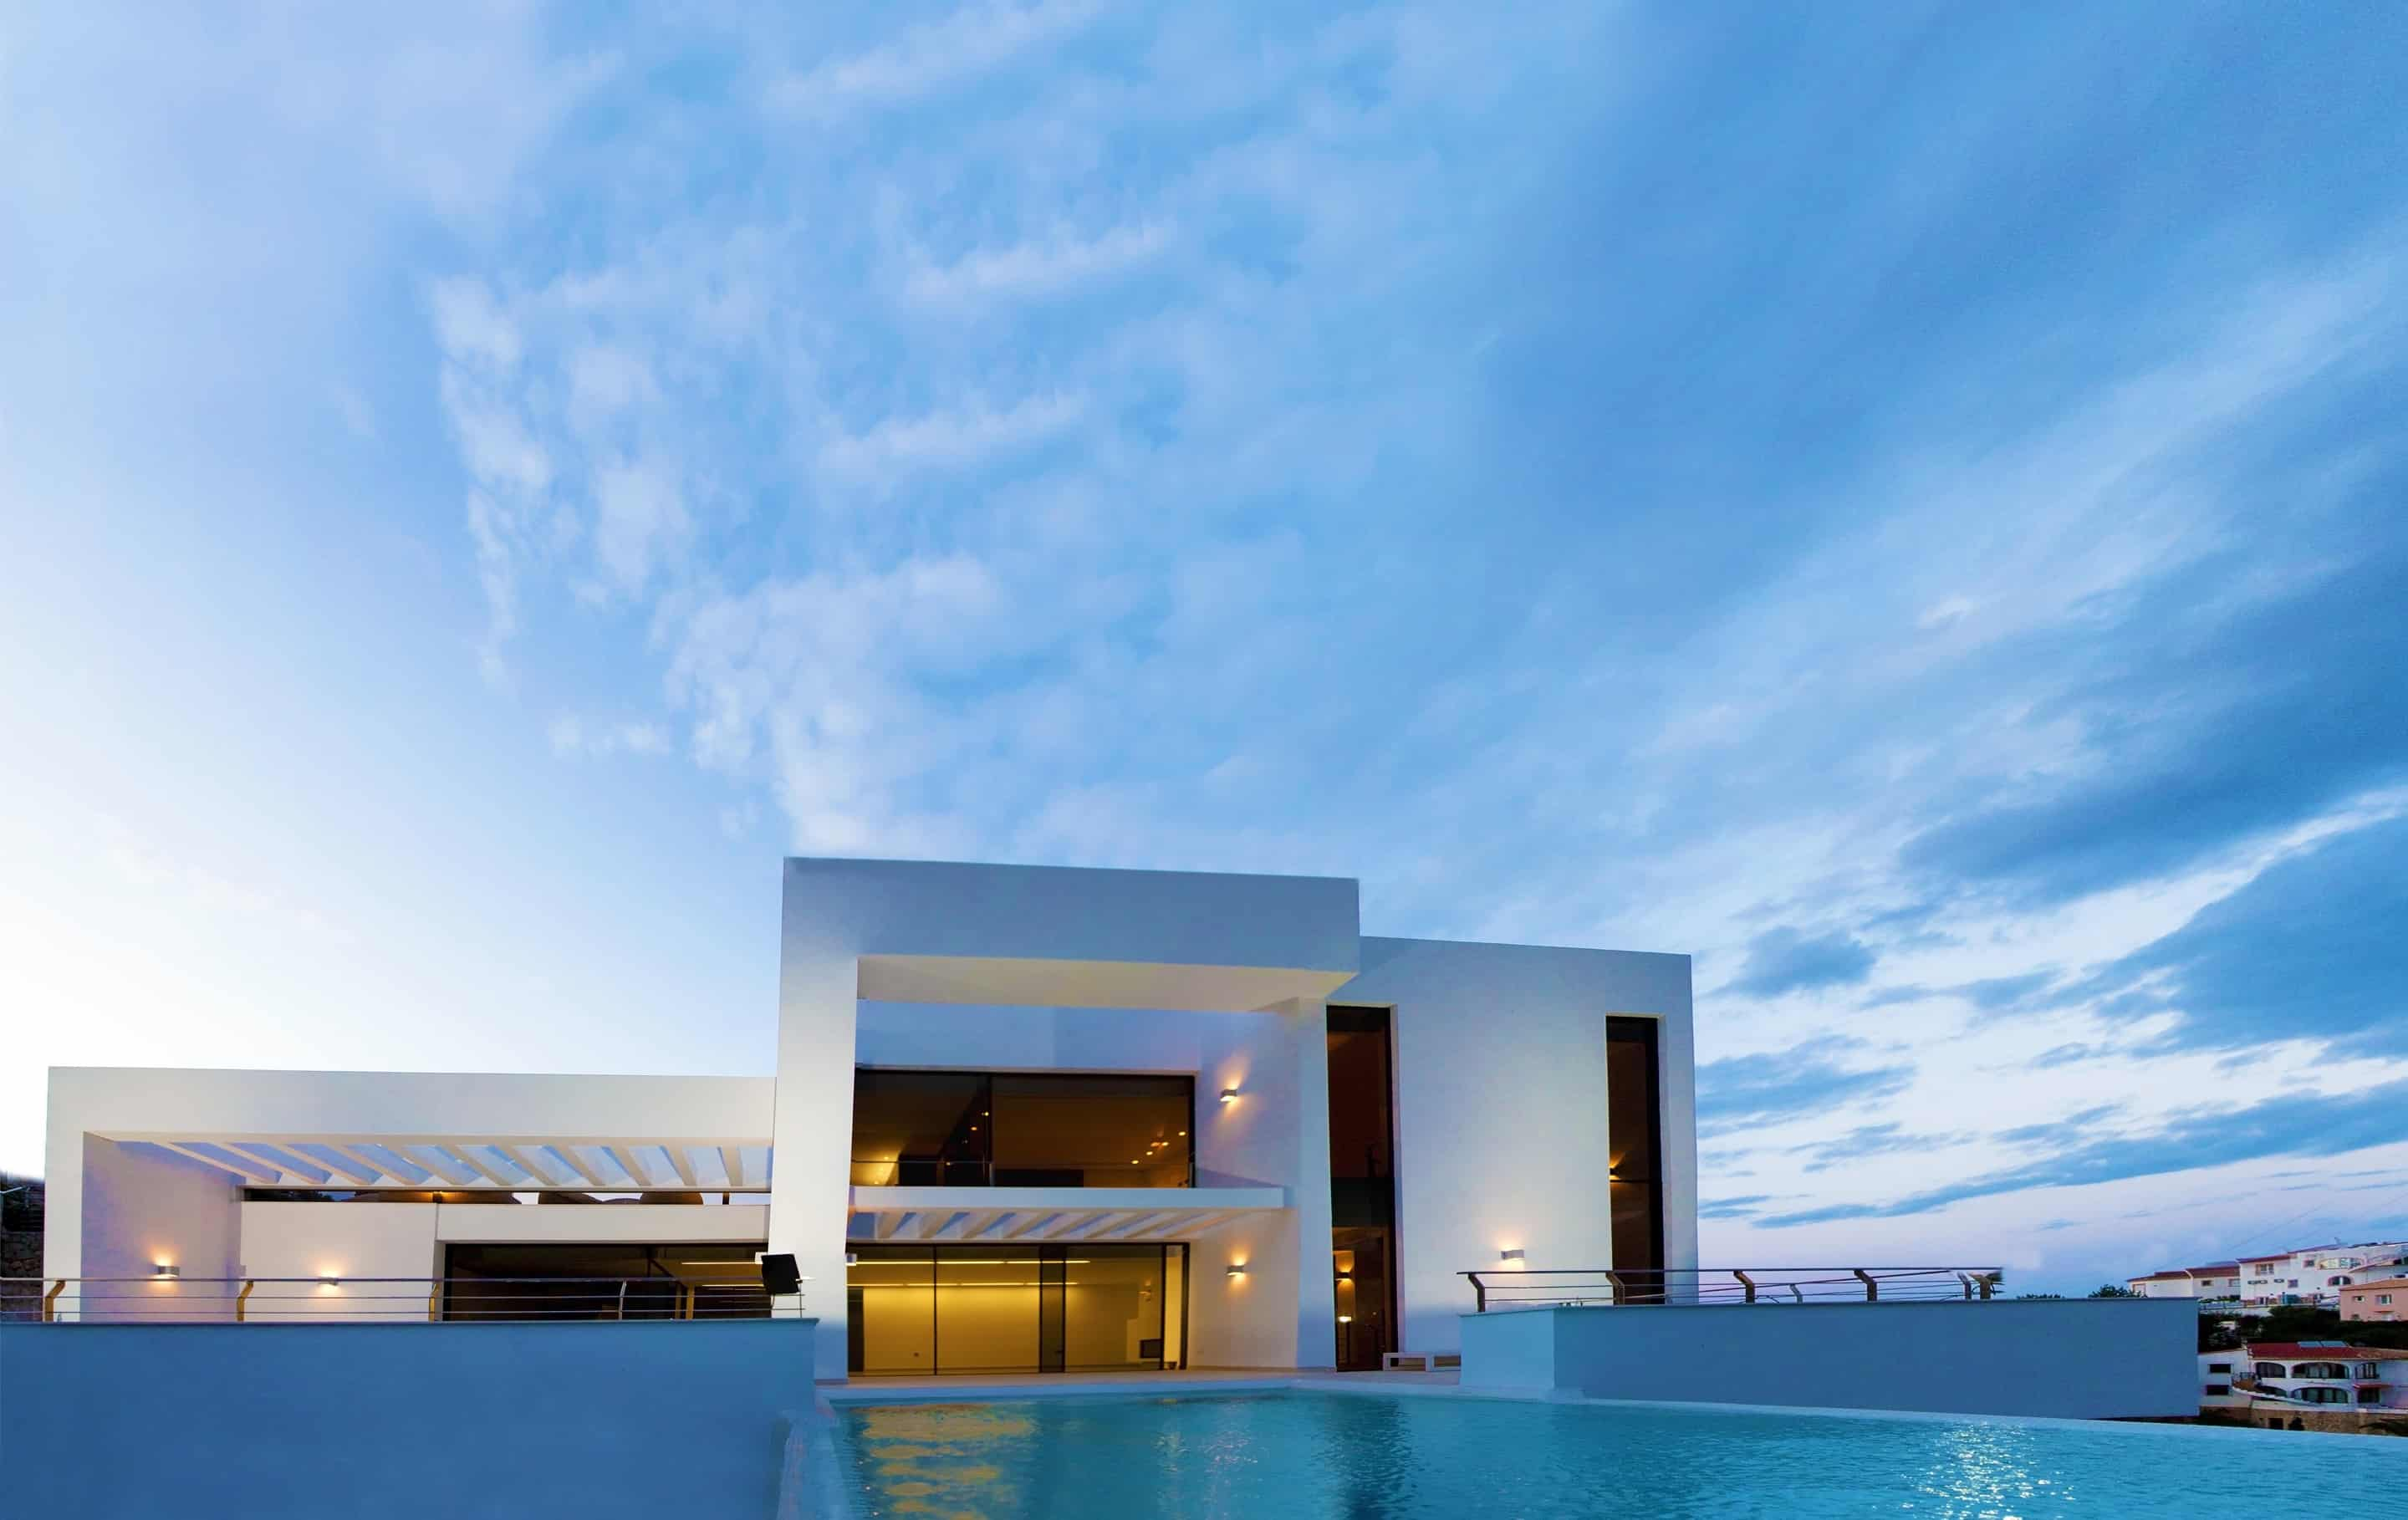 Modern-Mansions-Superlatives-La-Perla-del-Mediterraneo-by-Carlos-Gilardi-homesthetics-design-1